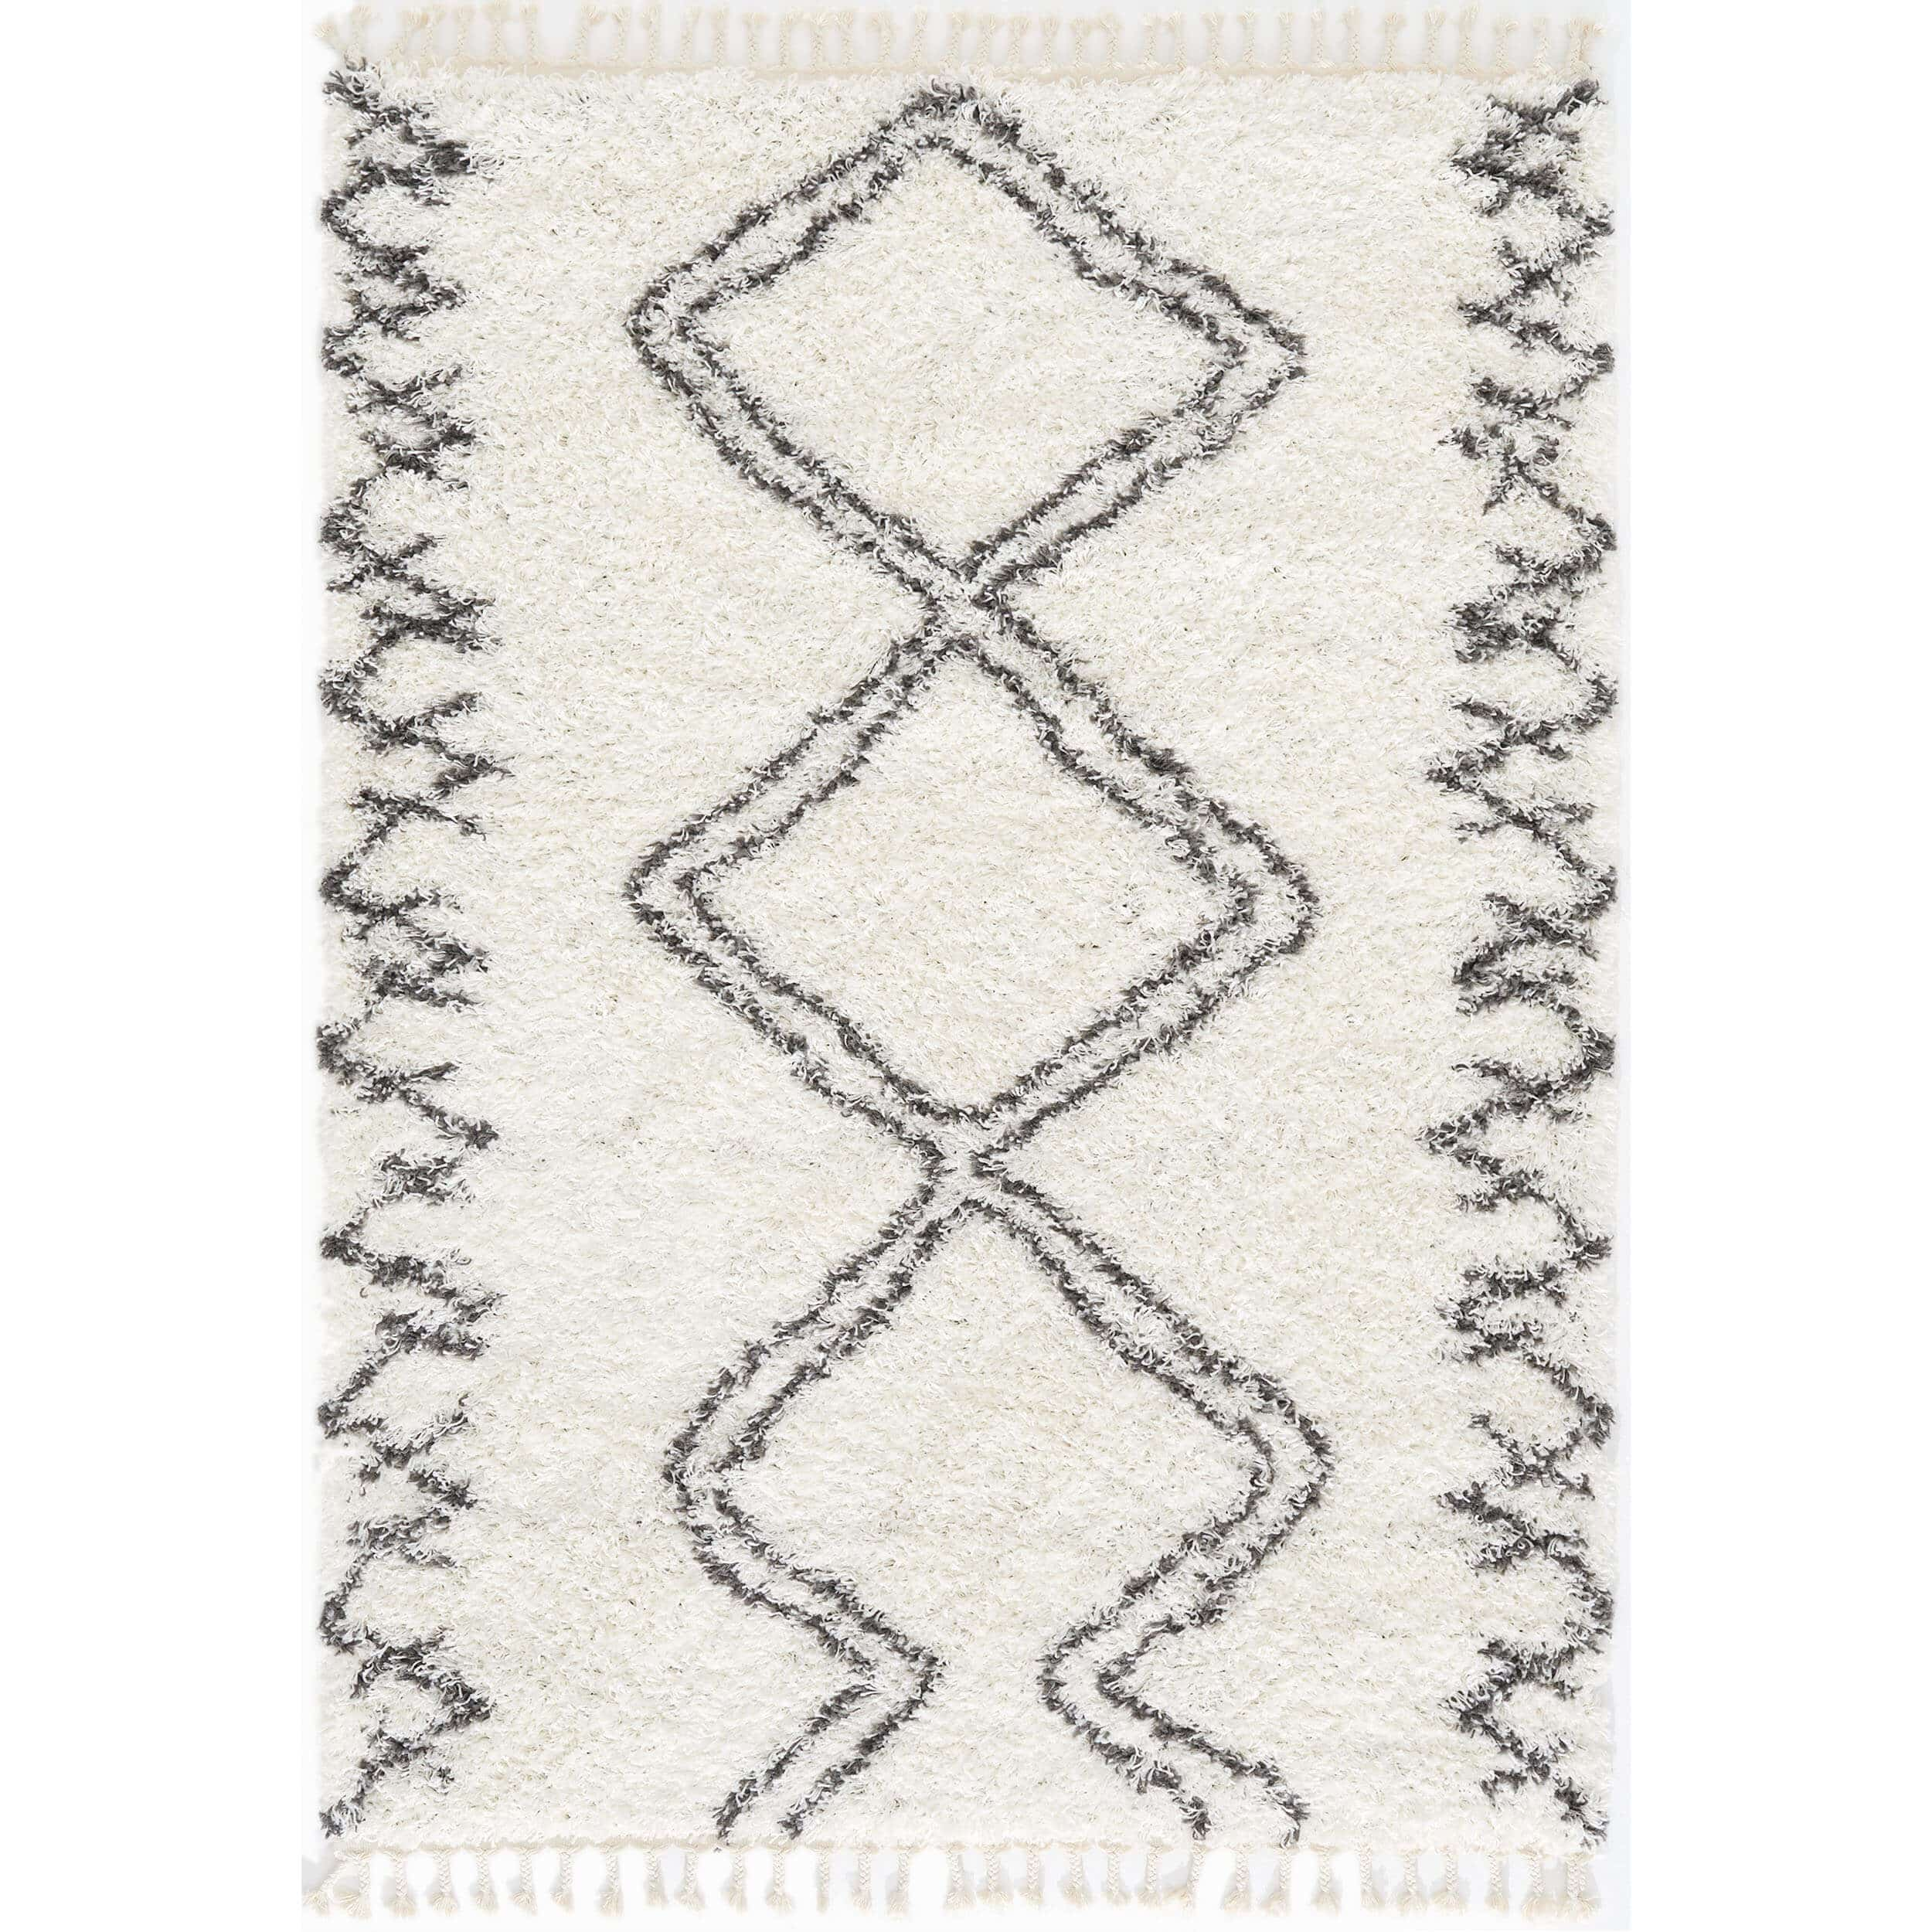 White Moroccan Berber Shaggy Rug for Living Room